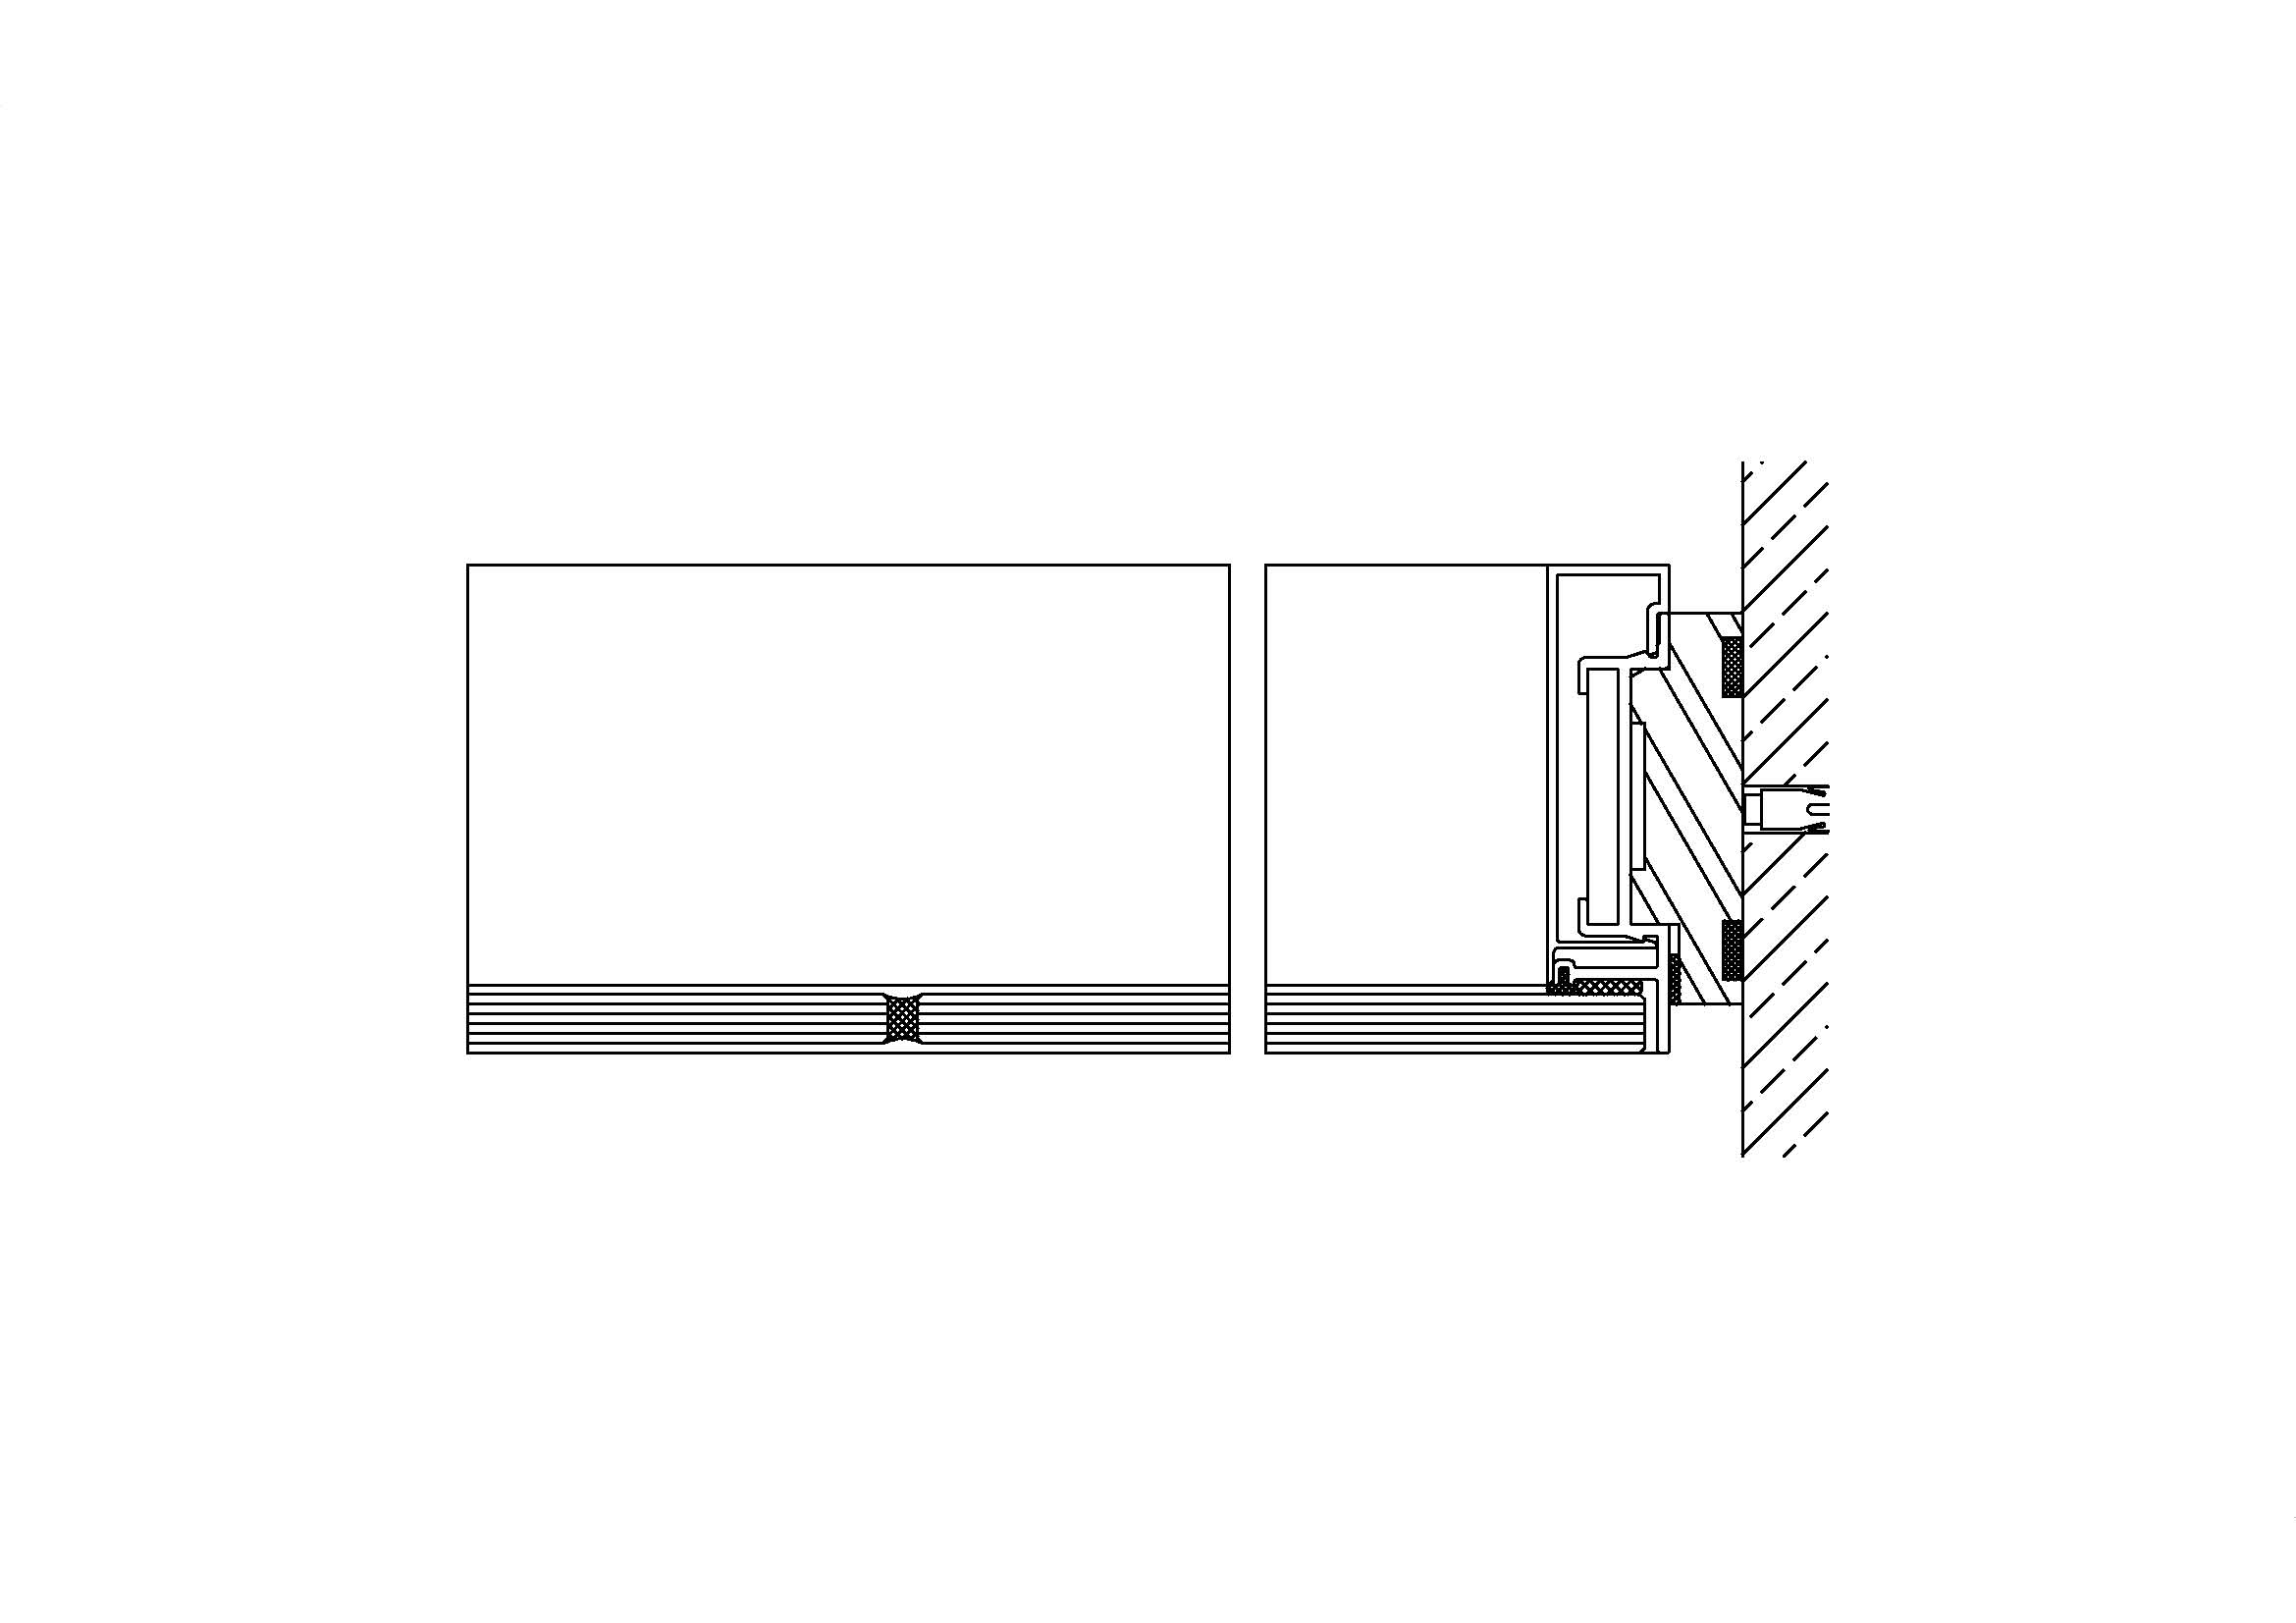 System 800 – Structural-Glazing-Prinzip